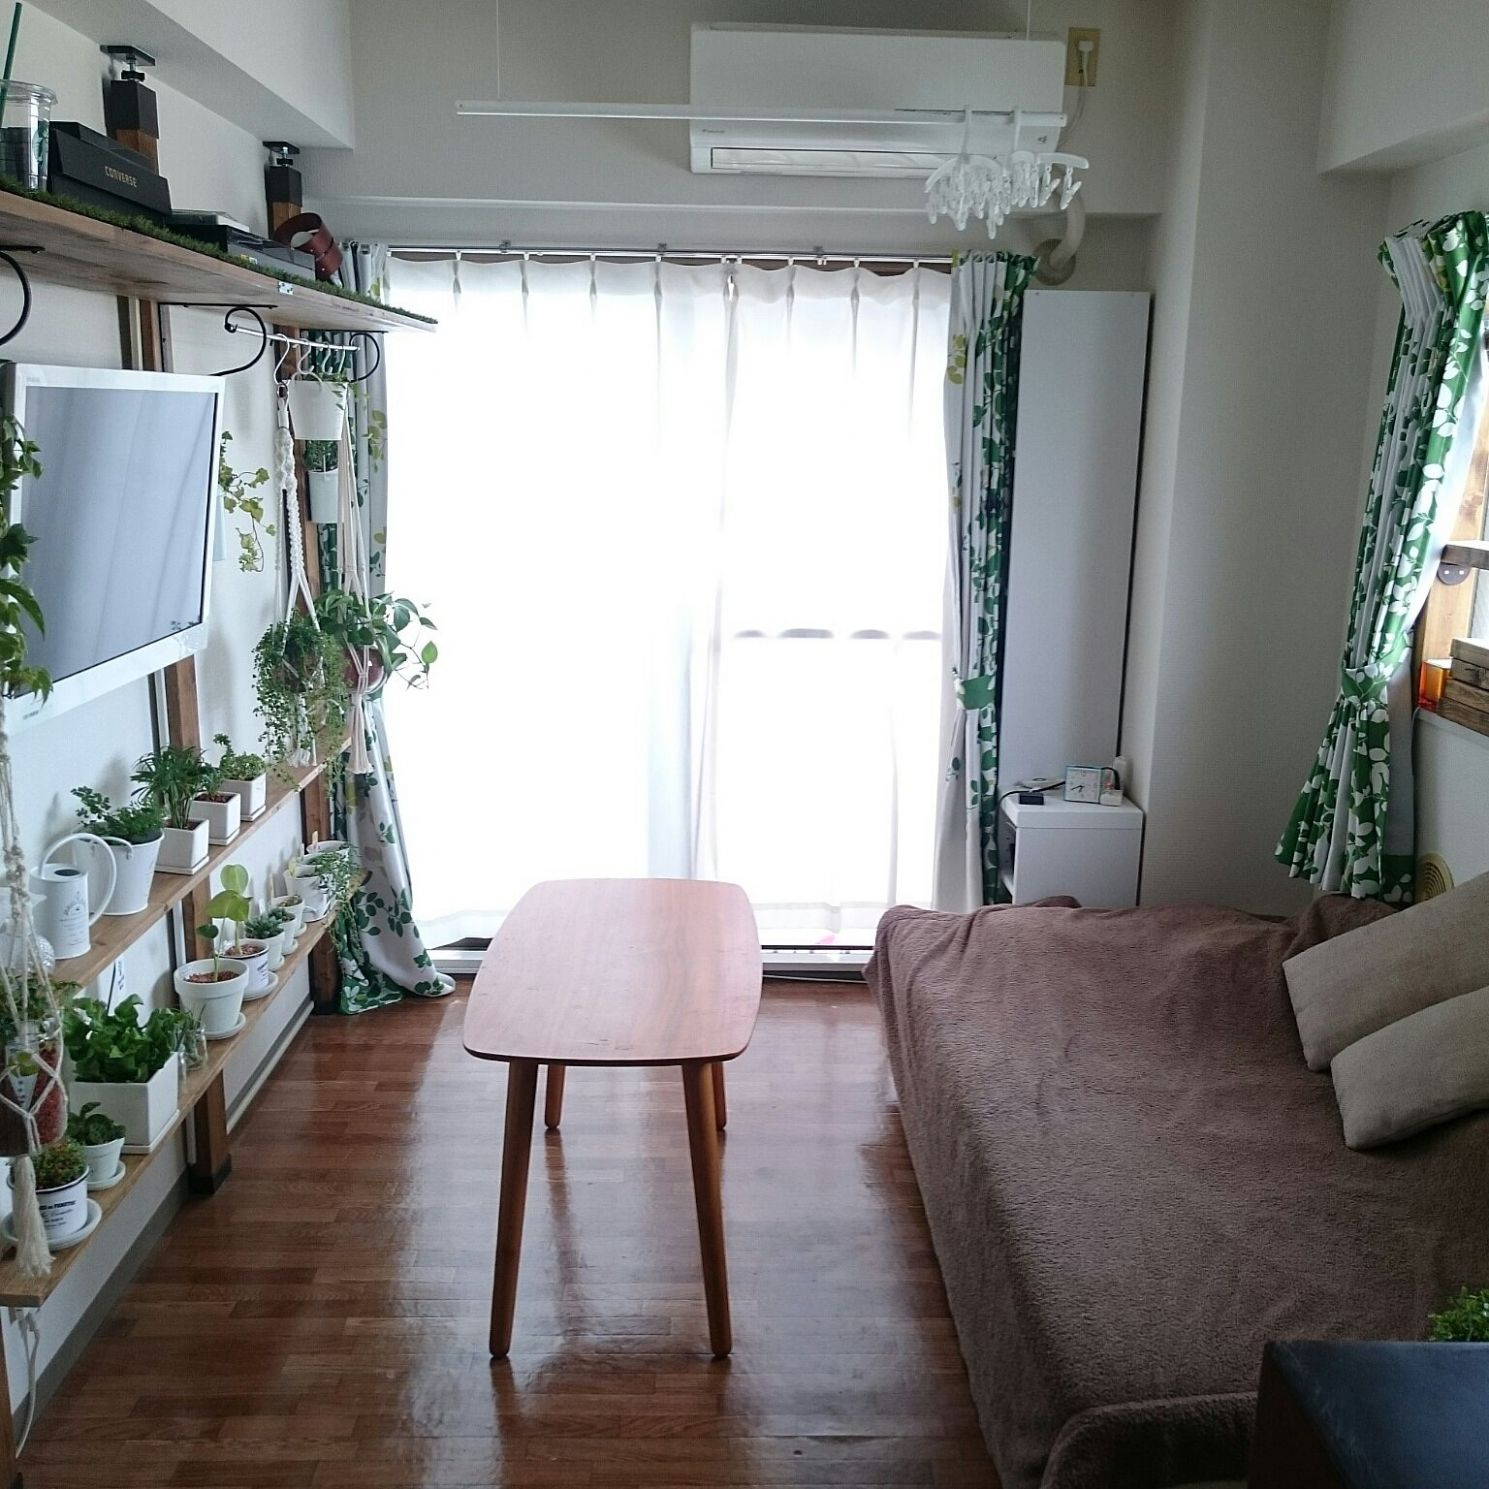 8 Simple Ideas for Decorating a Small Japanese Apartment - Blog